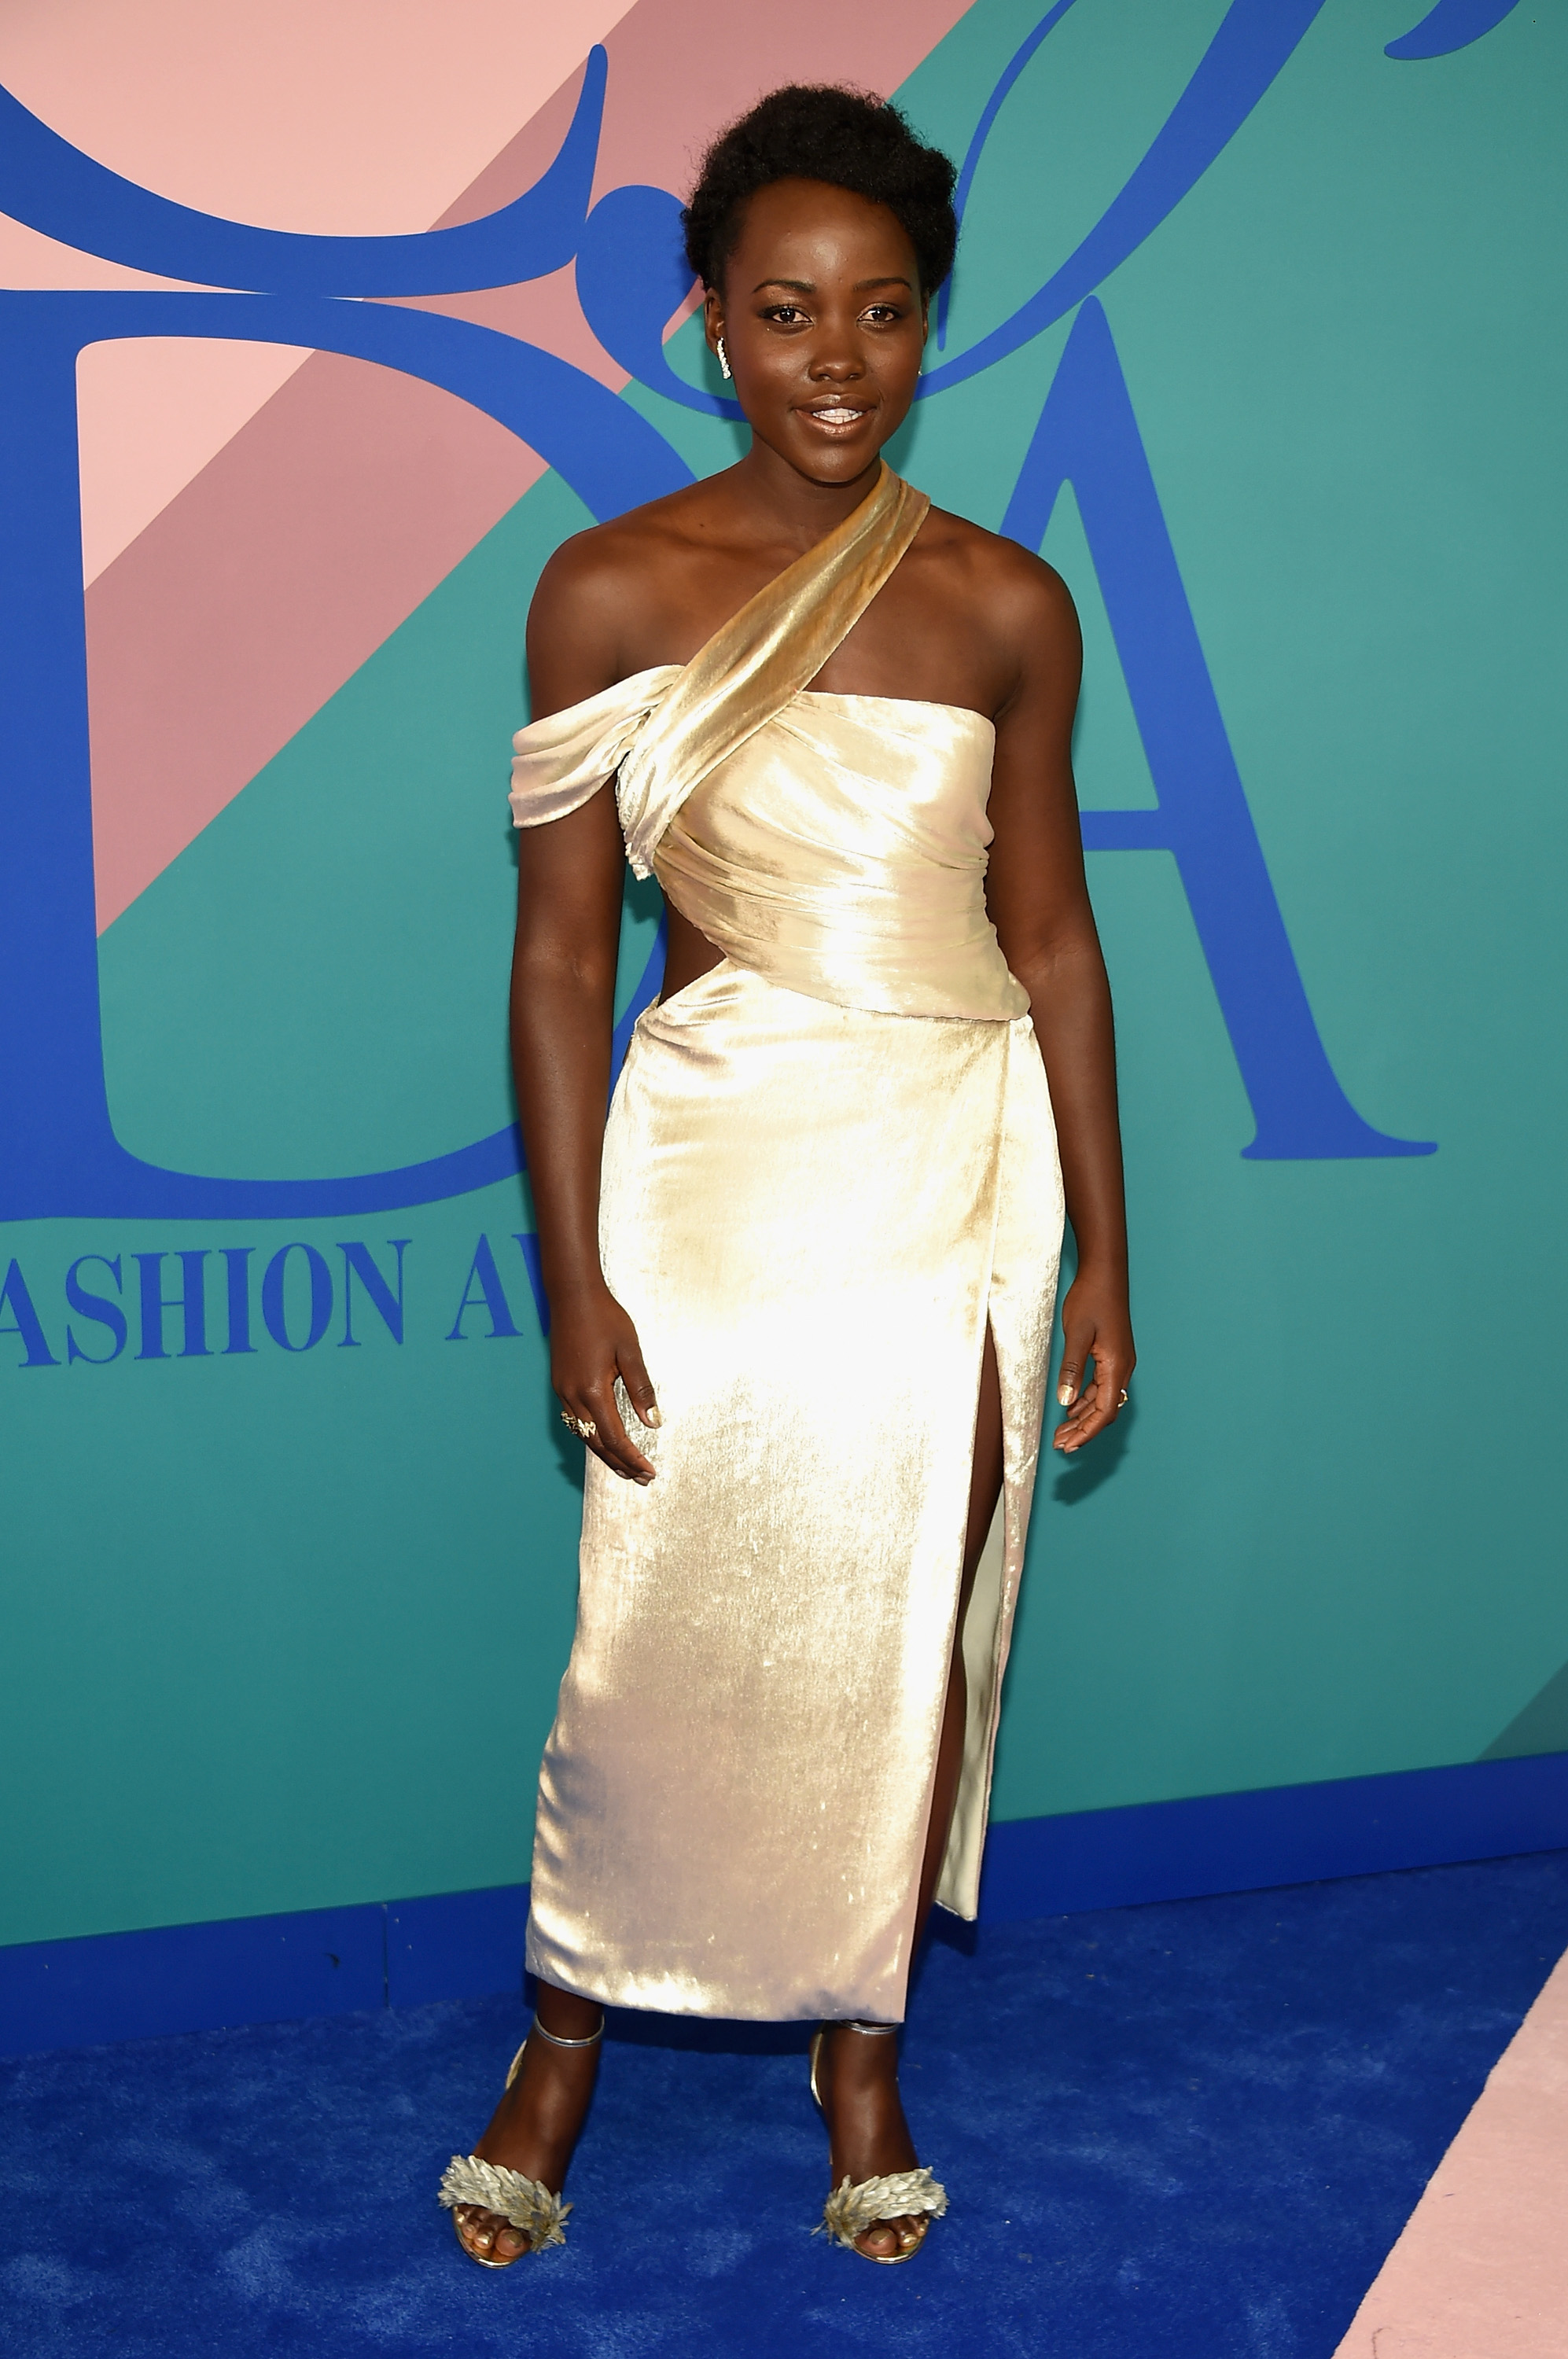 NEW YORK, NY - JUNE 05:  Lupita Nyong'o attends the 2017 CFDA Fashion Awards at Hammerstein Ballroom on June 5, 2017 in New York City.  (Photo by Dimitrios Kambouris/Getty Images)